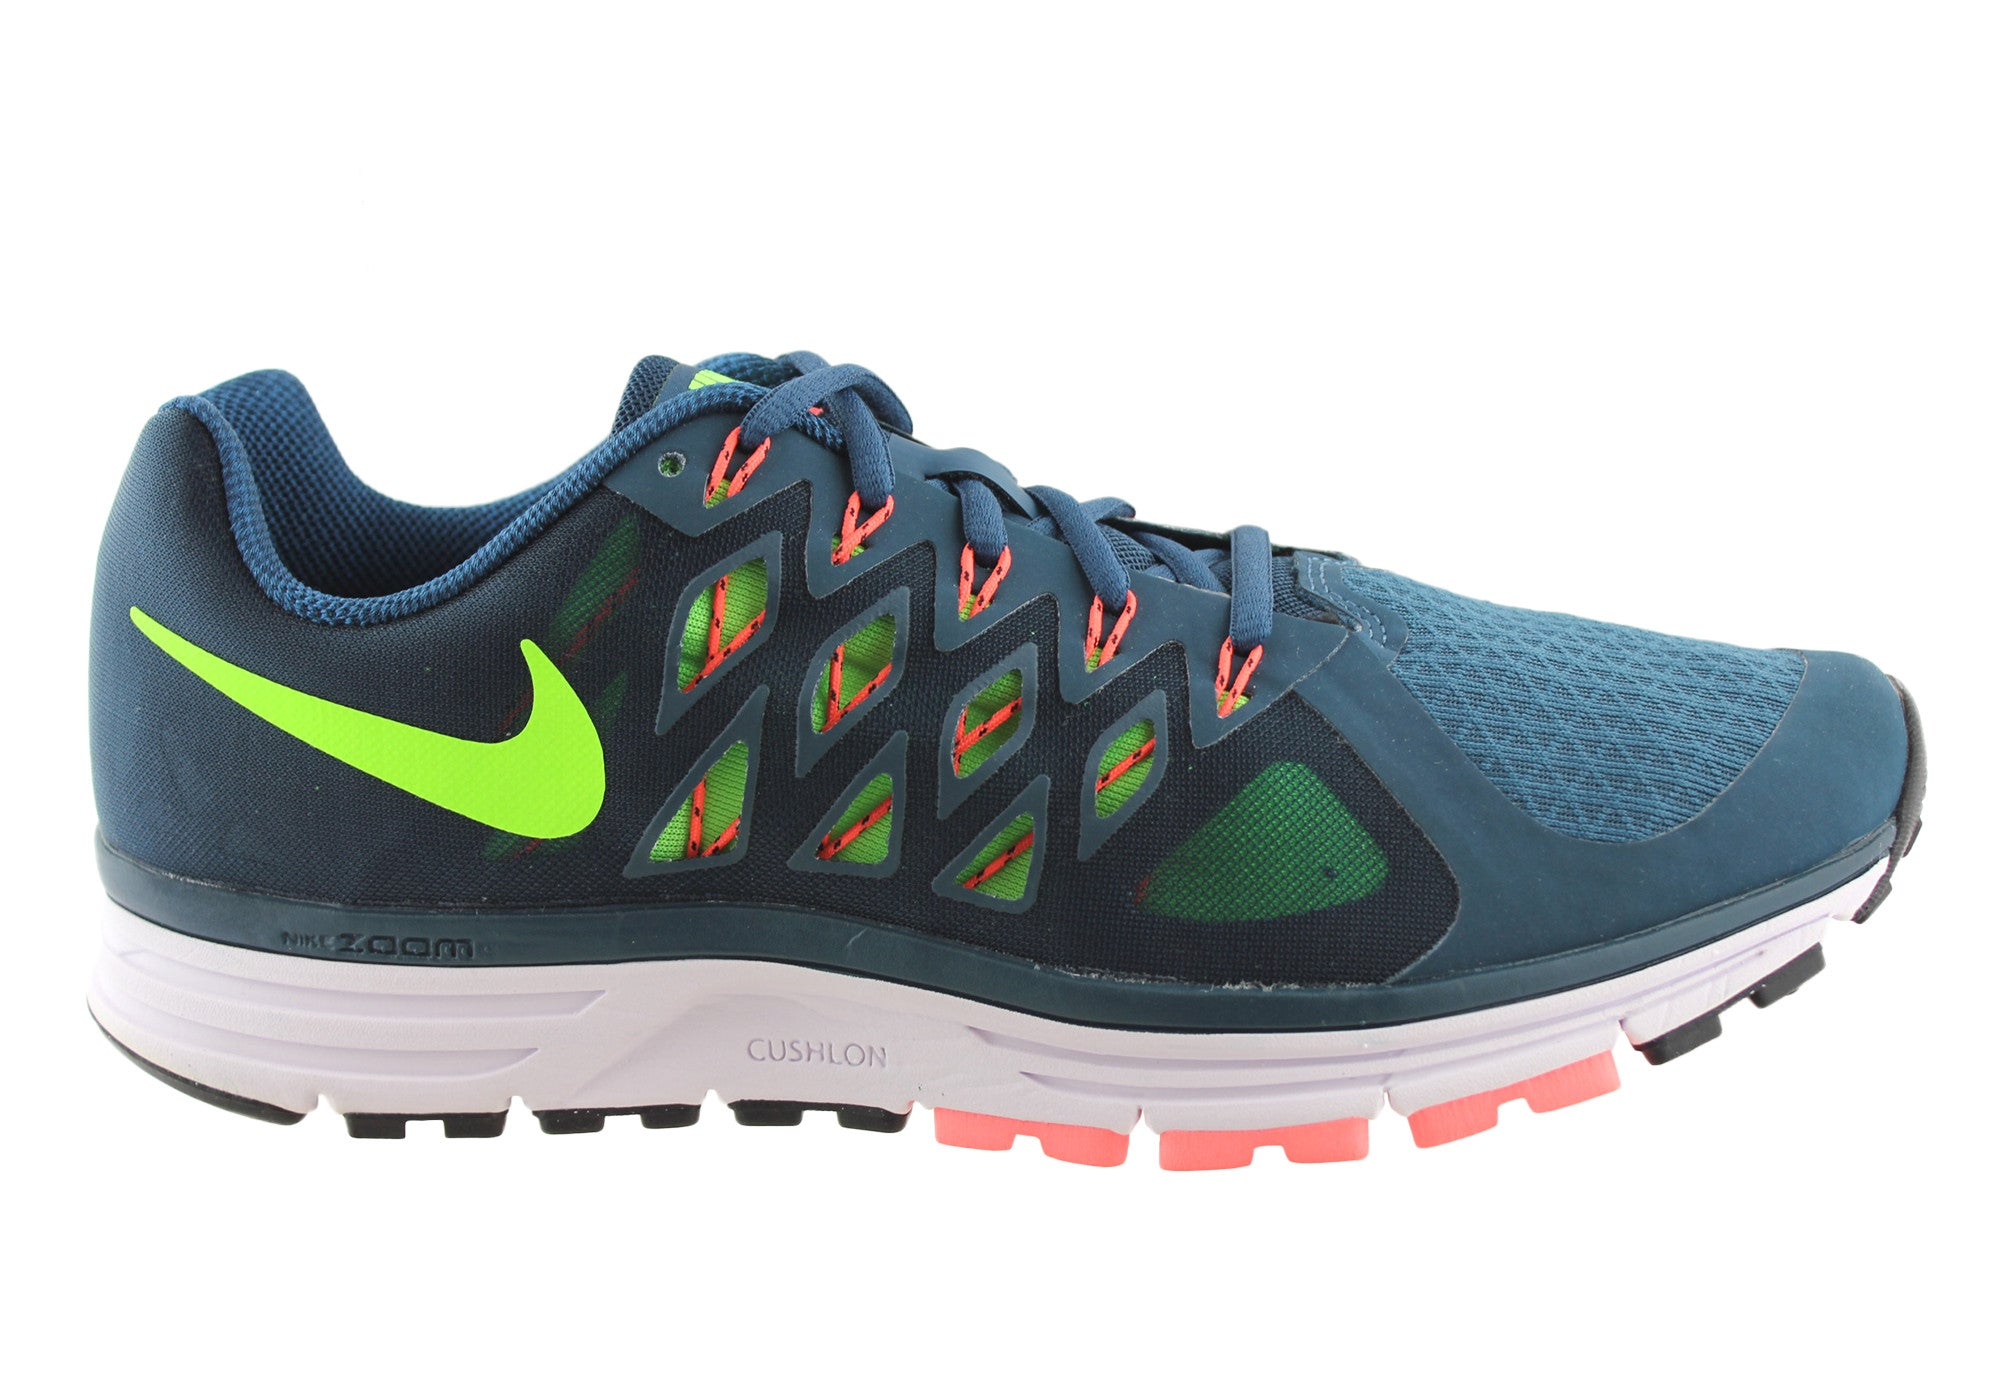 impacto Autenticación Empotrar  Nike Zoom Vomero 9 Mens Premium Cushioned Running Shoes | Brand House Direct